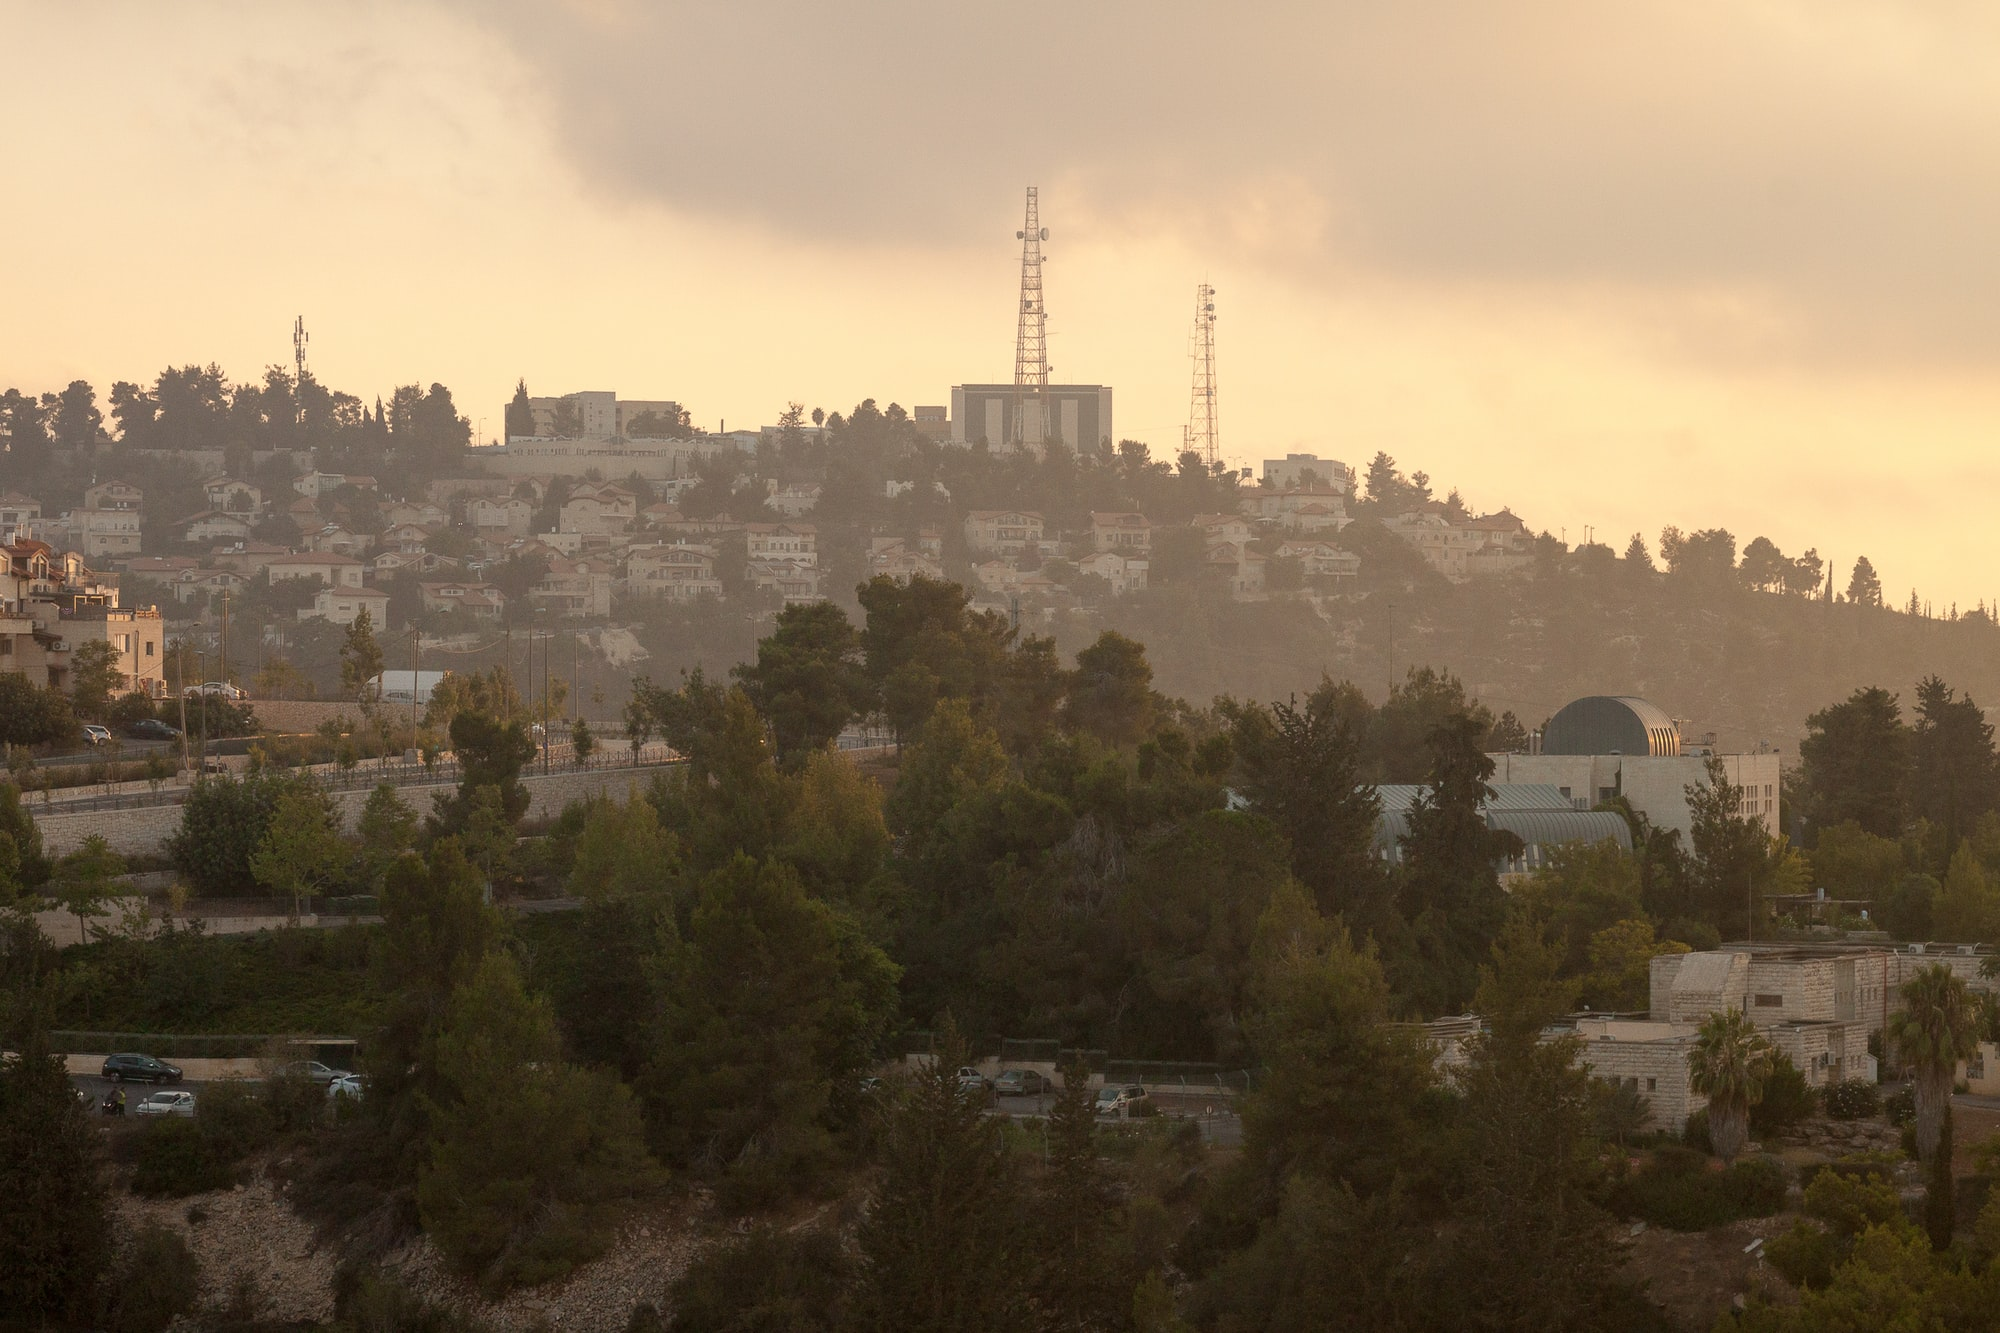 Israeli settlers refuse to vacate illegal West Bank settlement